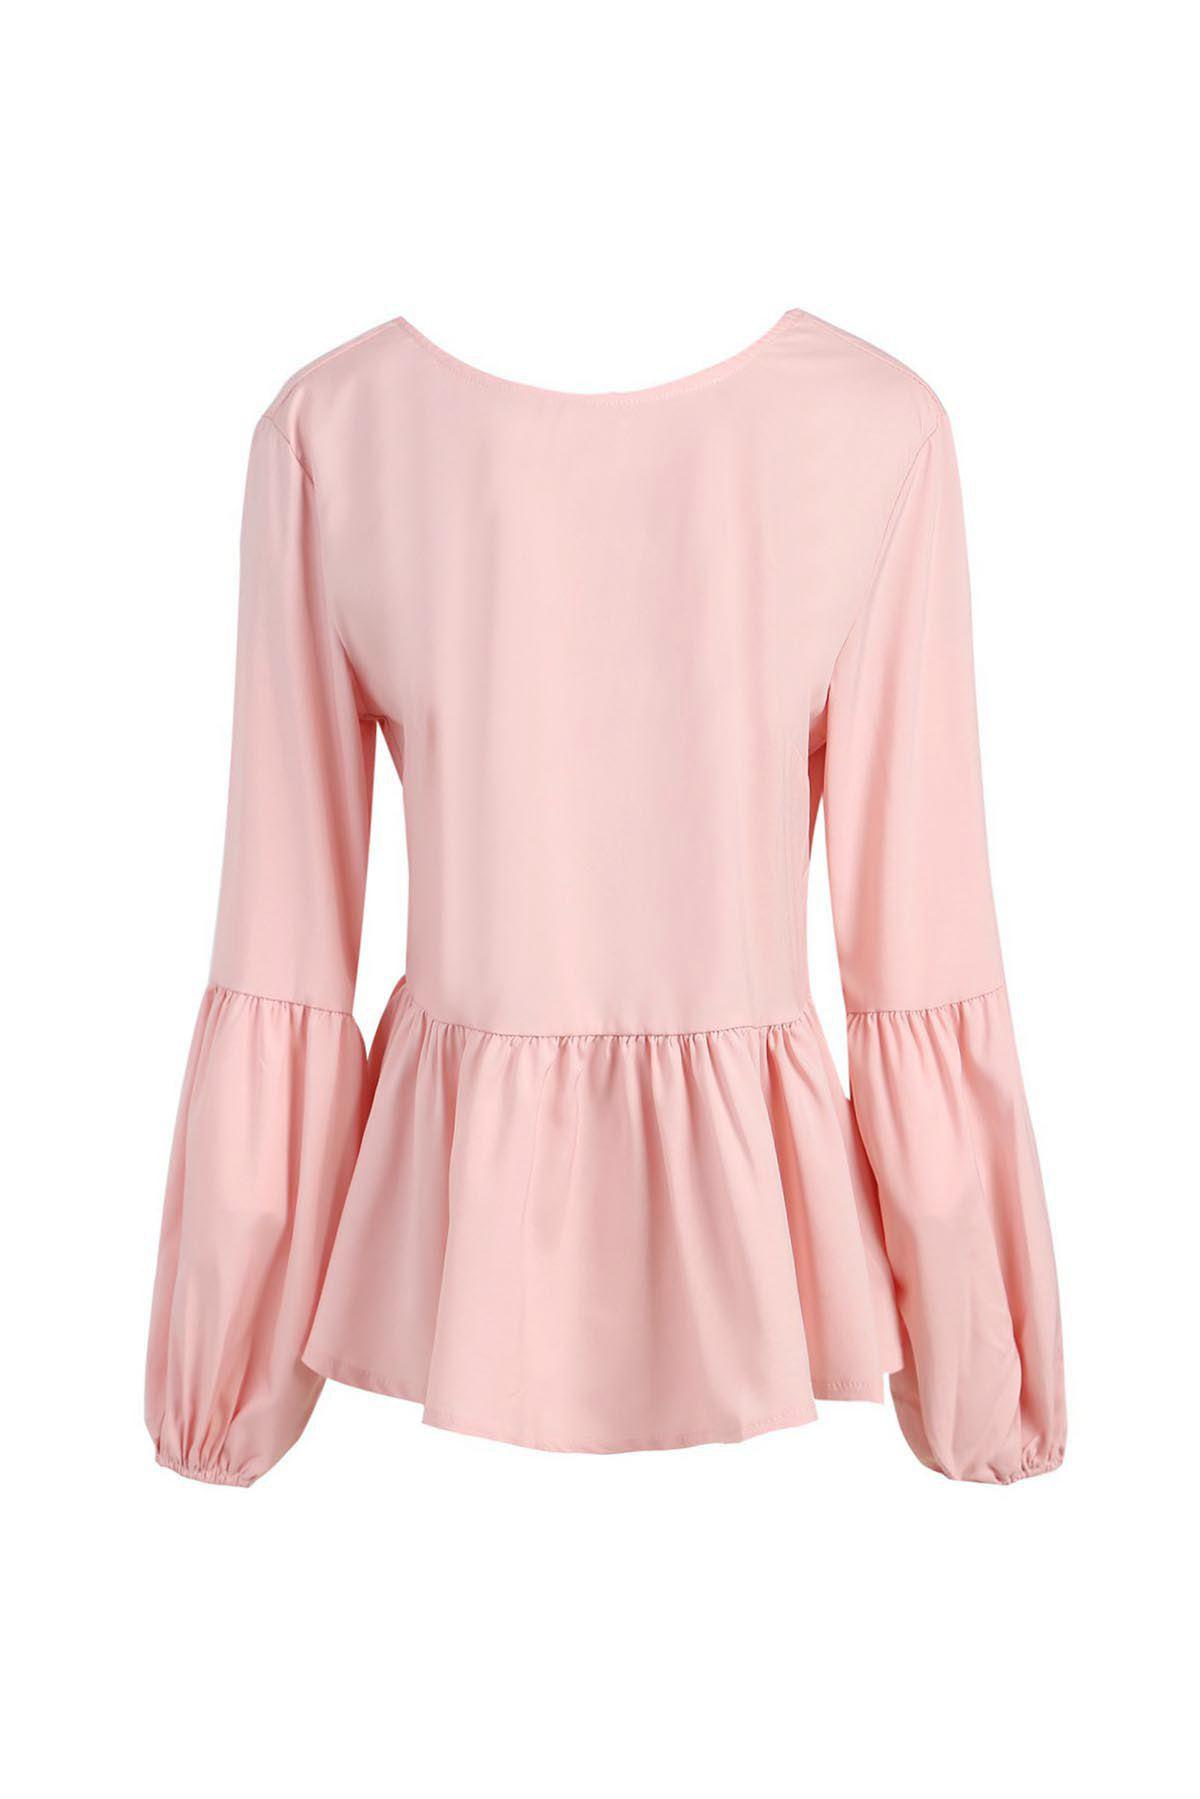 878f350086c954 Cheap Stylish Round Neck Long Sleeve Bowknot Design Flounced Blouse For  Women